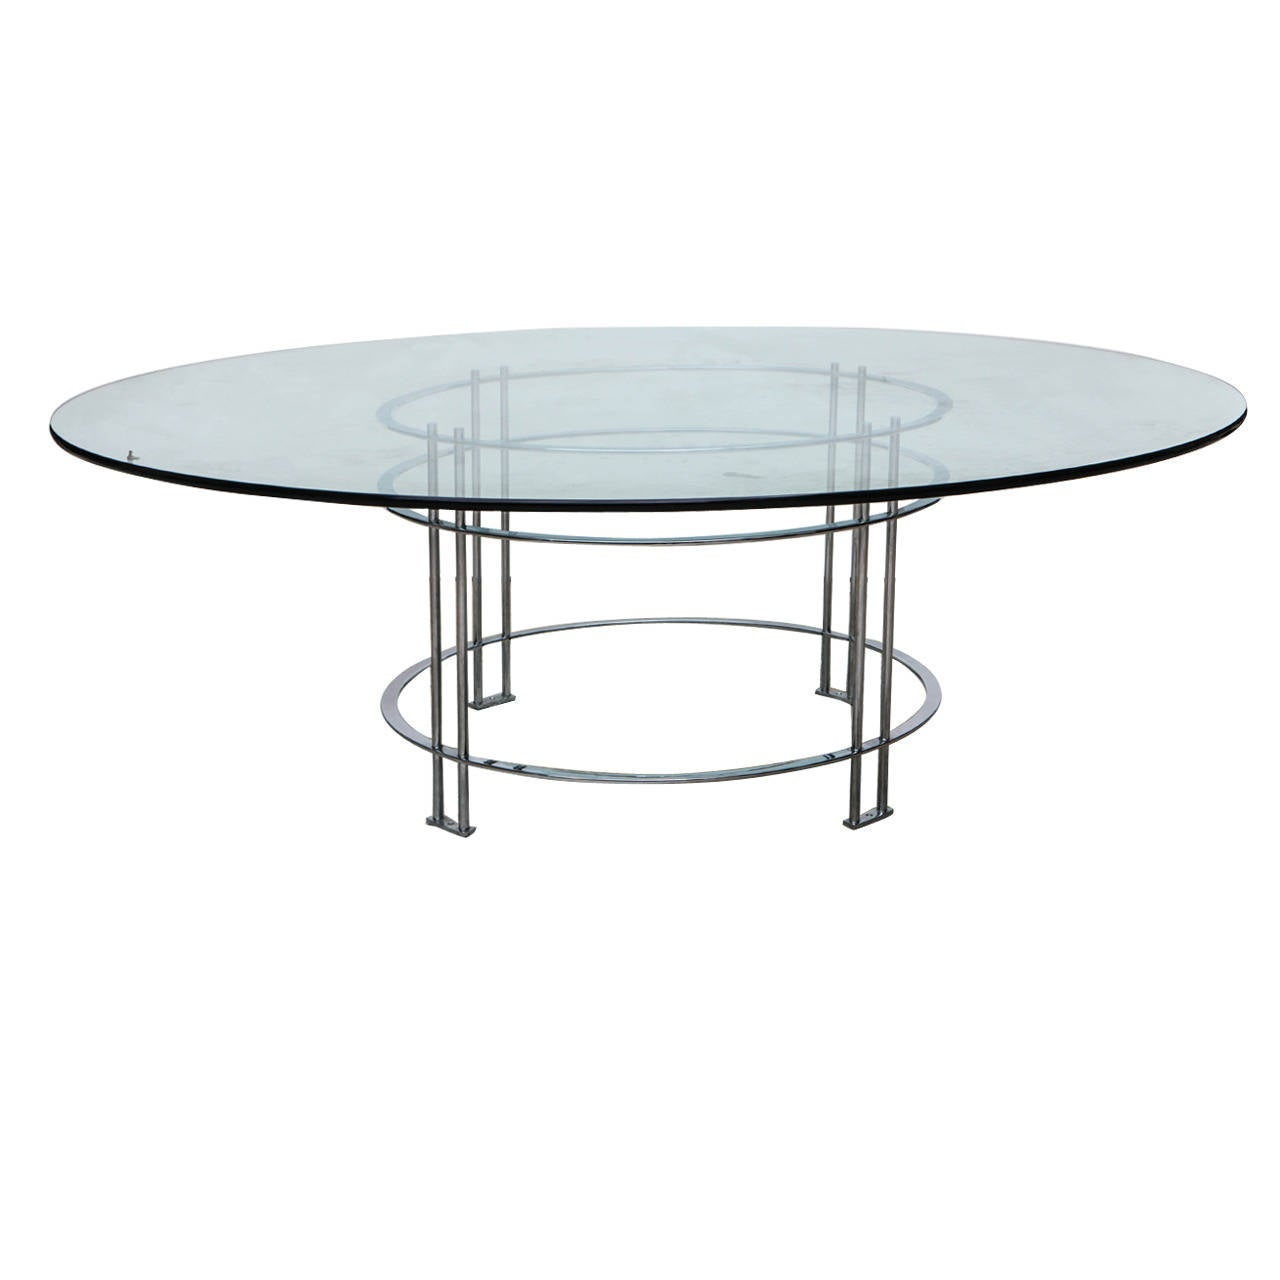 Vintage round dining table with glass top for sale at 1stdibs for Round glass dining table